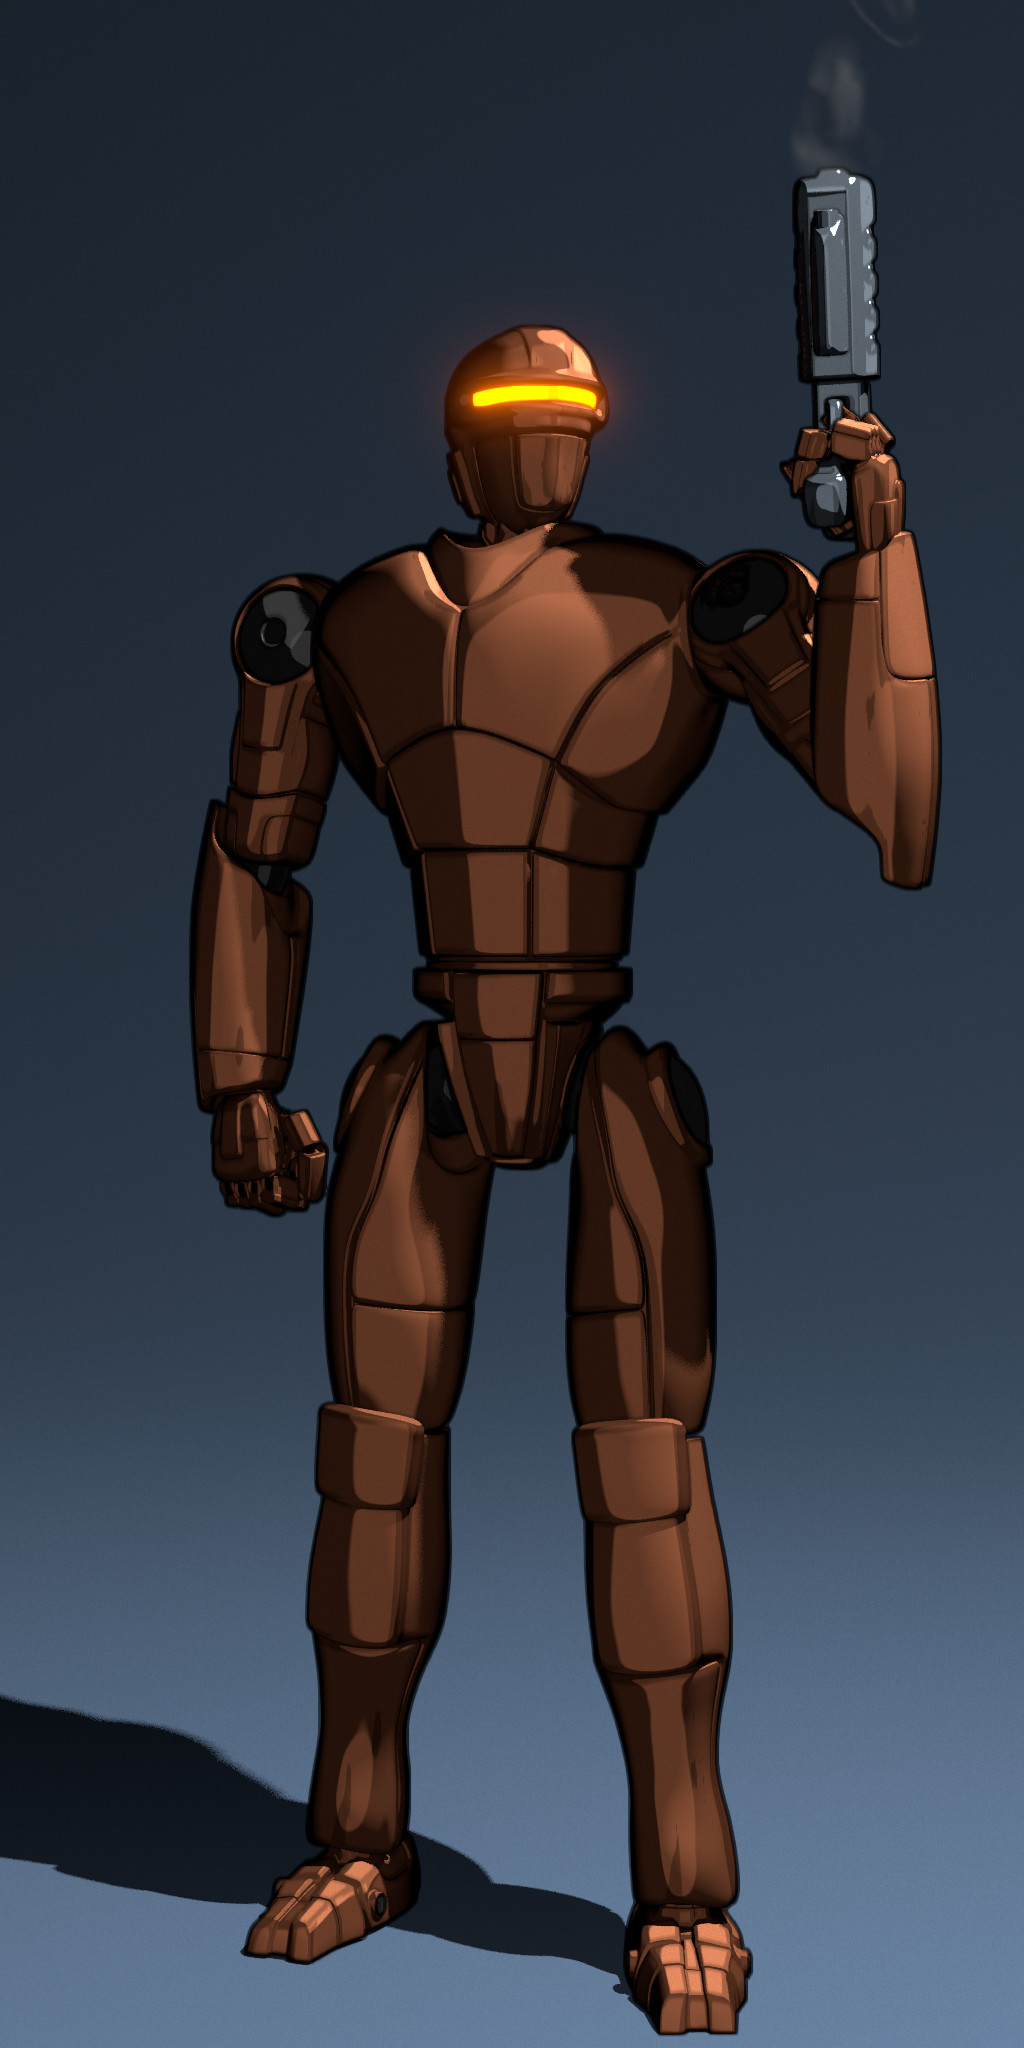 Robot Concept - Comic Style Preview (November 2013)